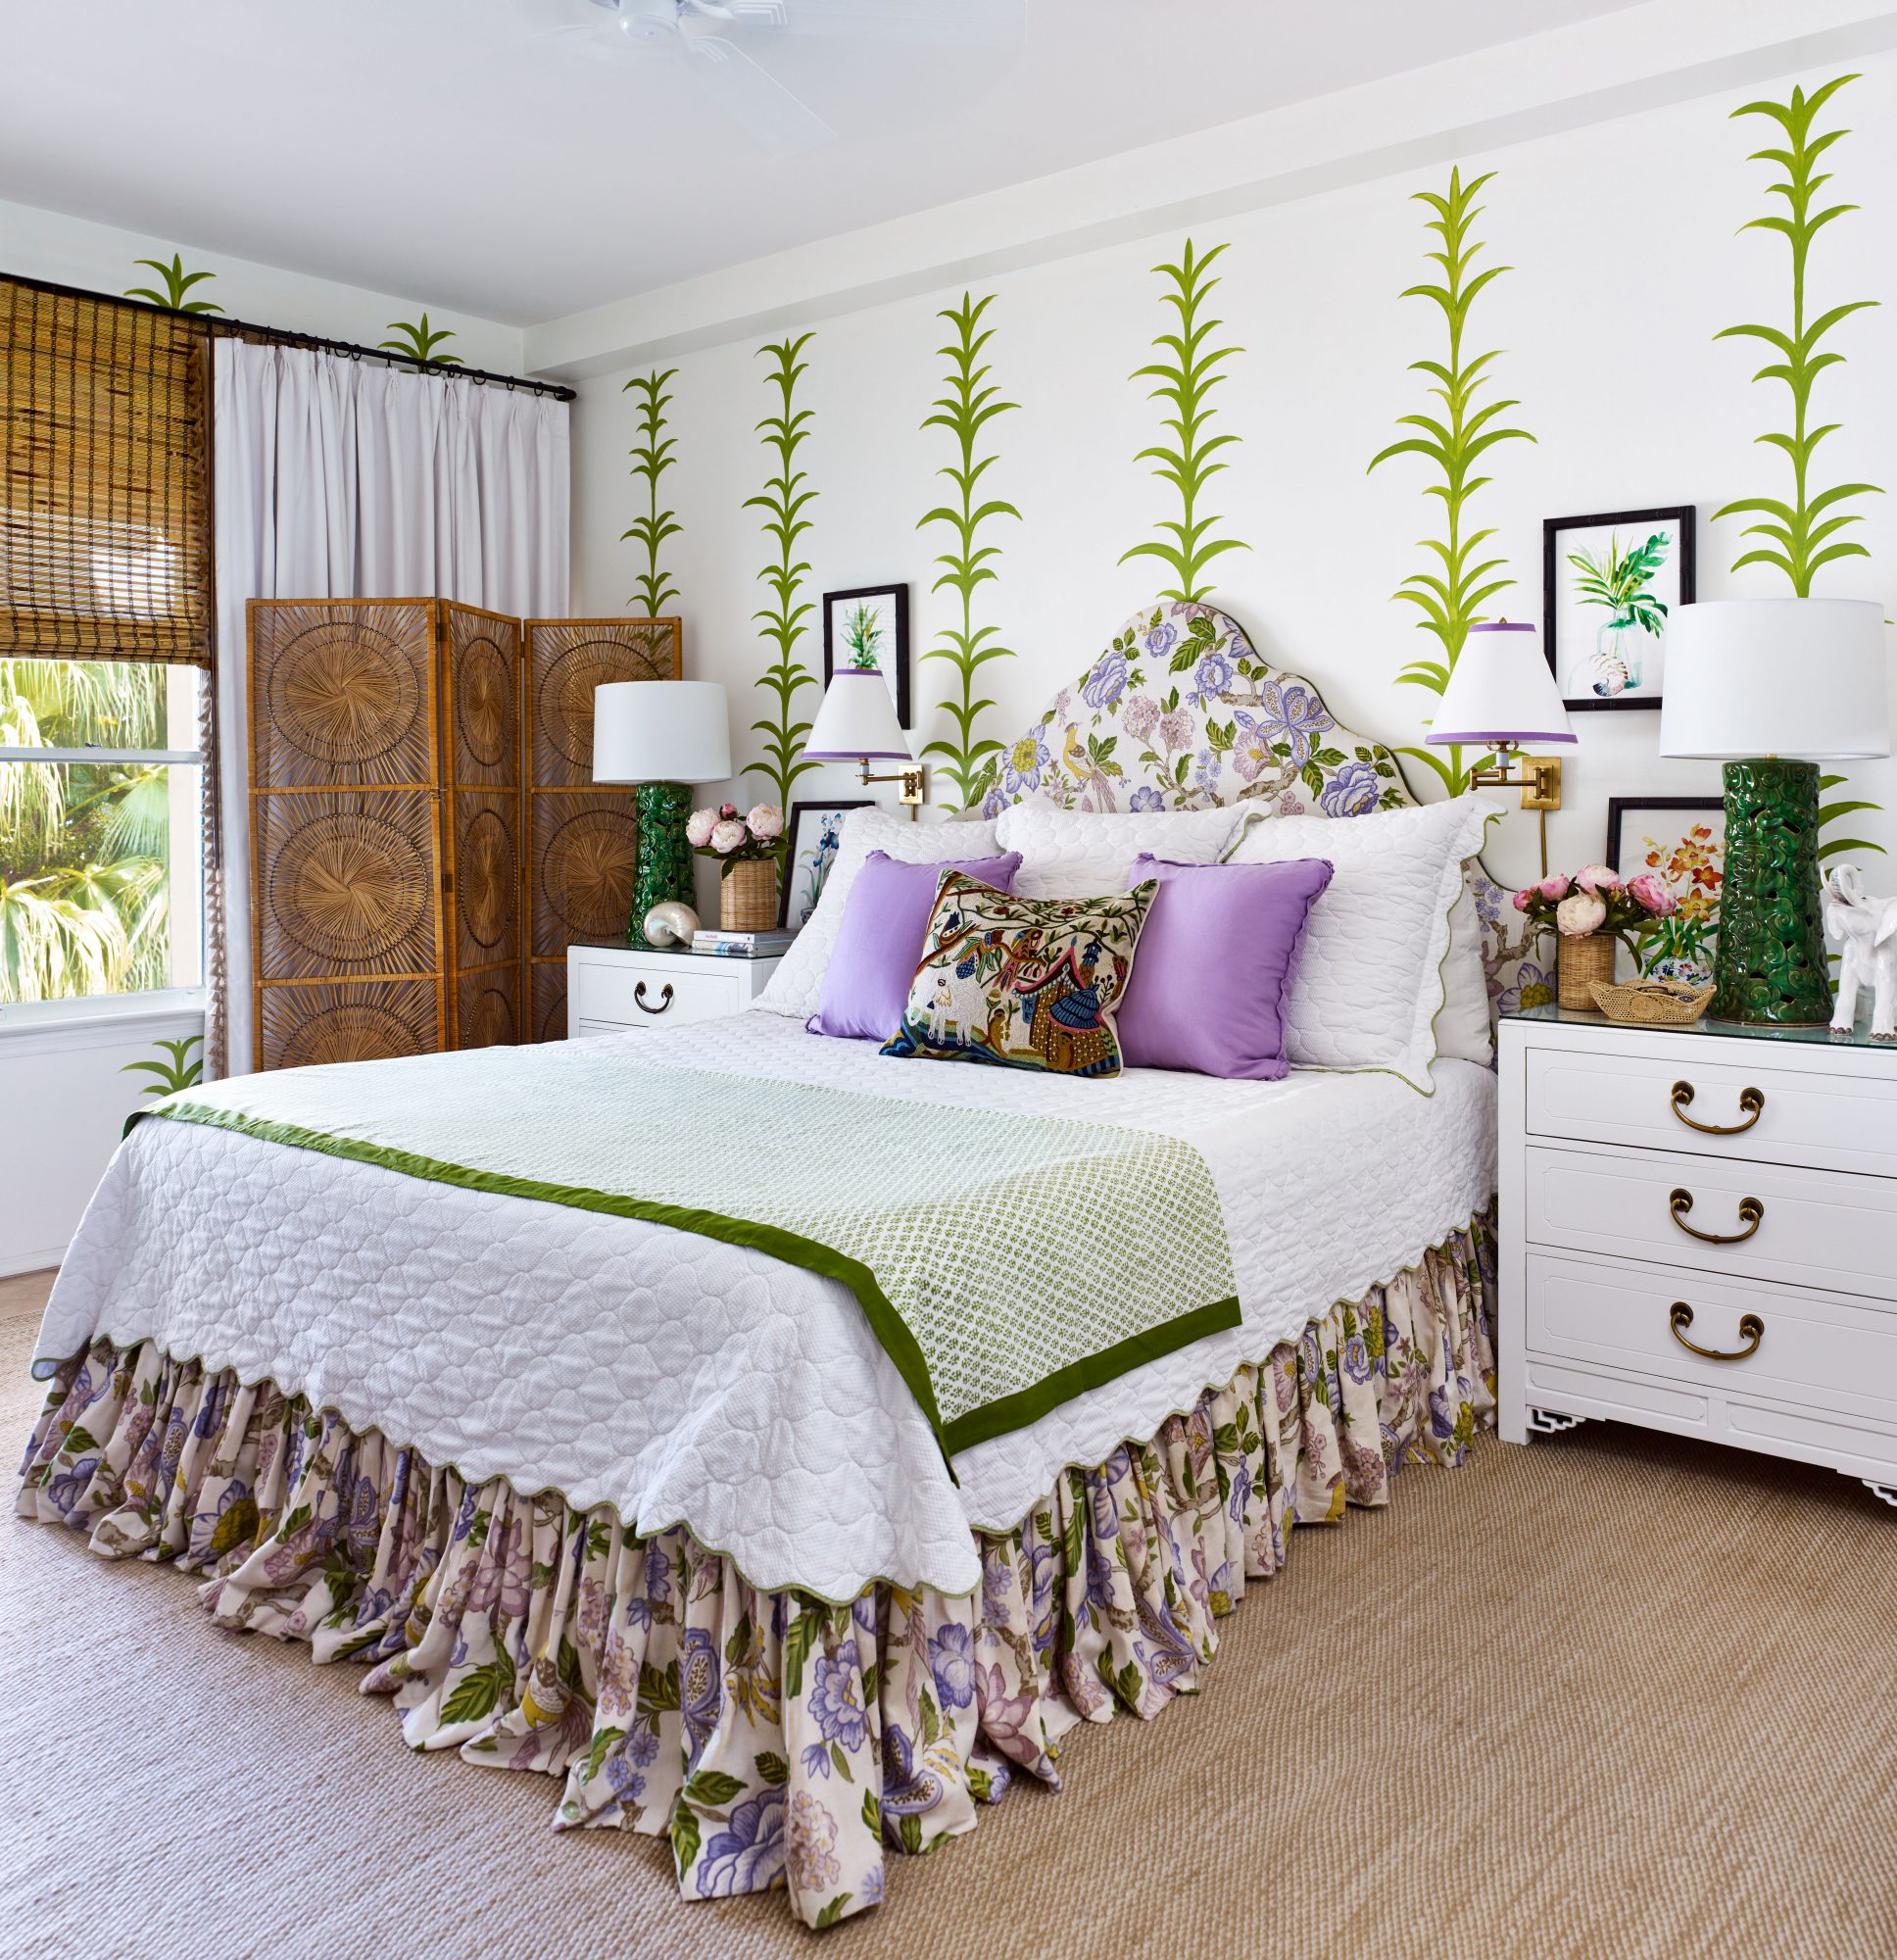 Emily Painter Palm Beach Rental Main Bedroom in Green and Purple